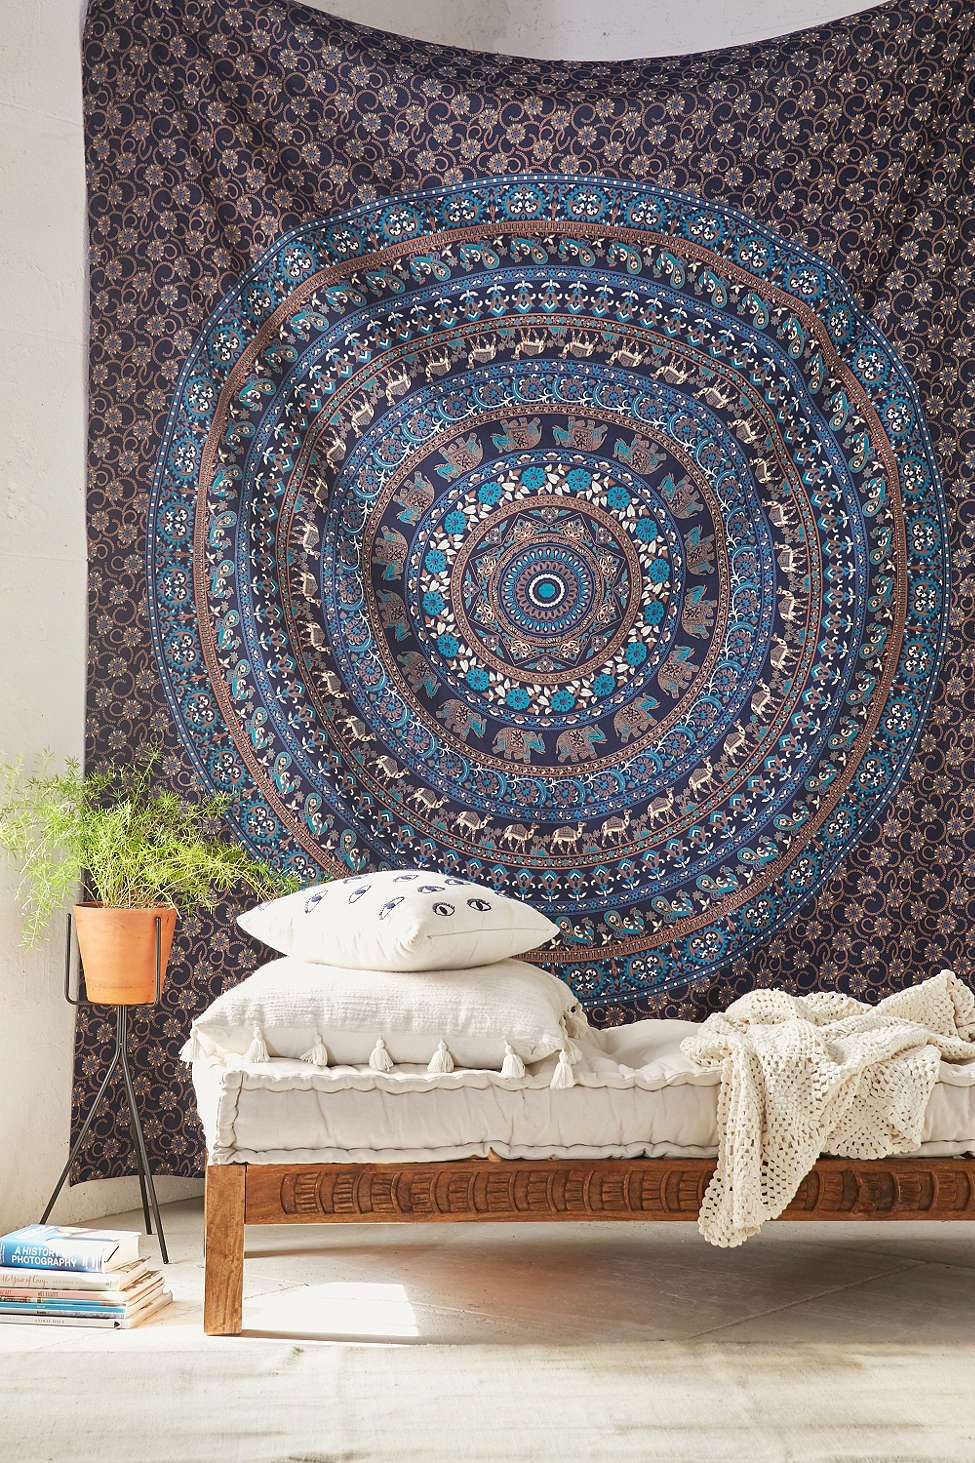 zoom logan urban outfitters finds hunt defaultimage b the tapestry thinking on magical medallion